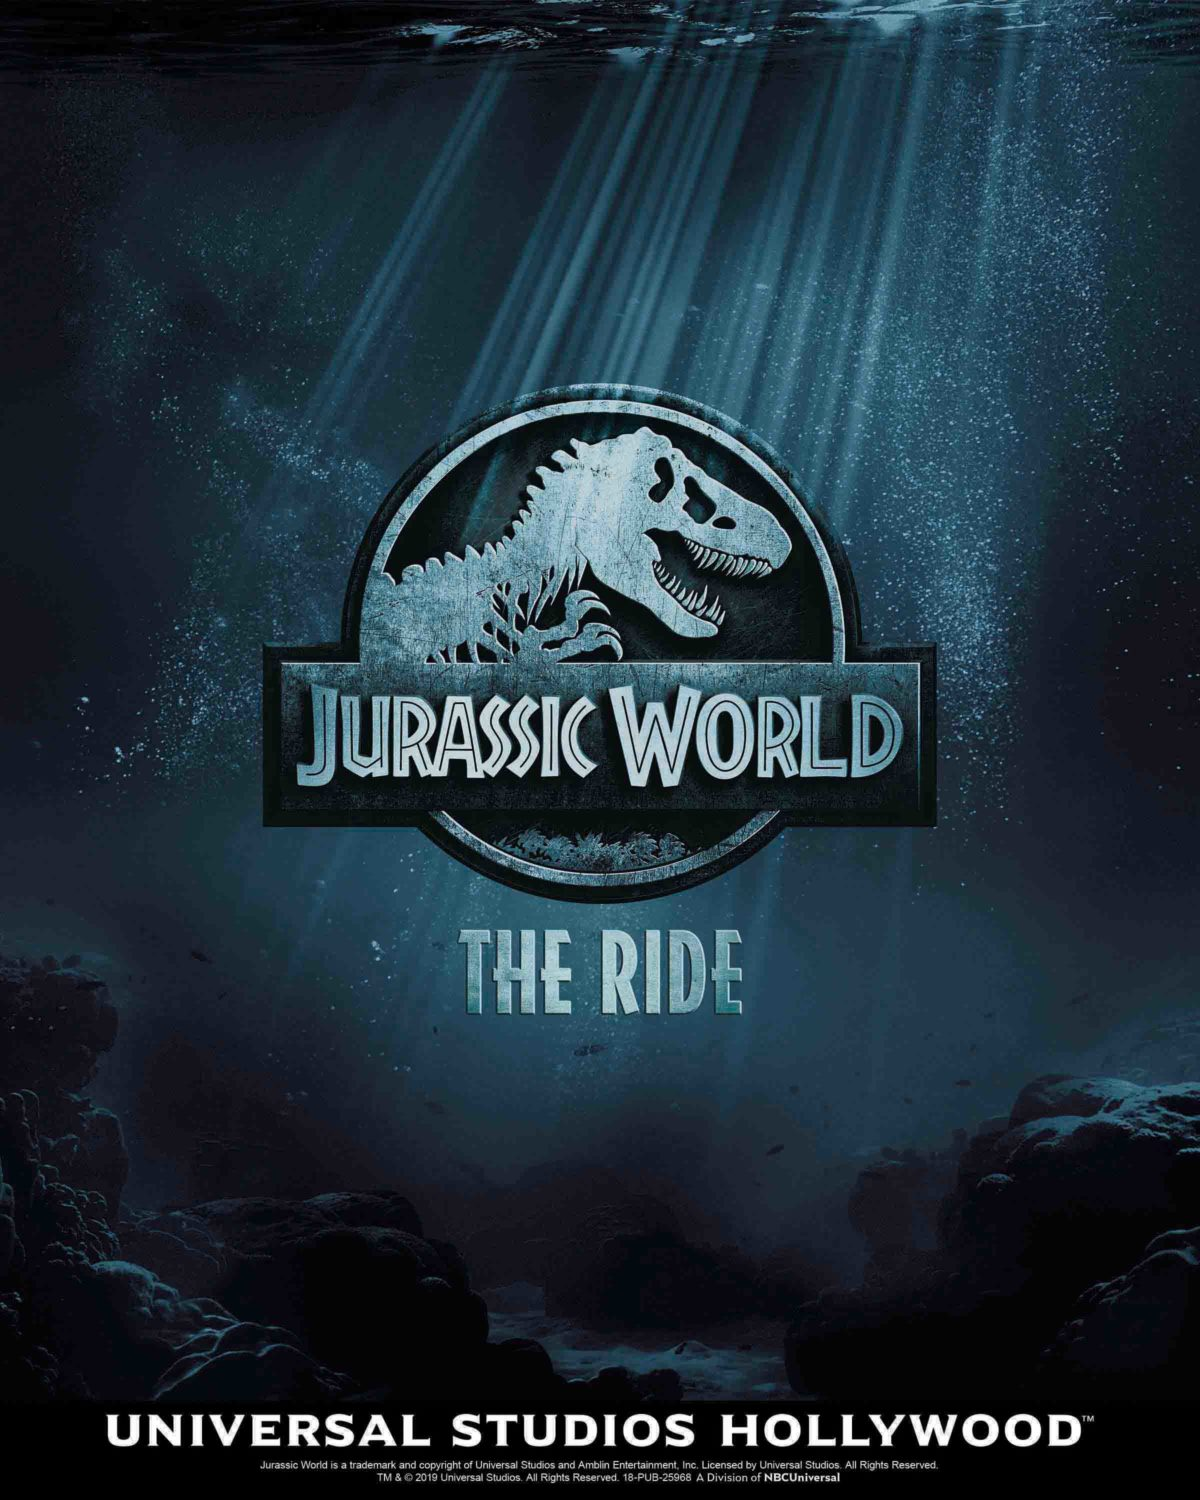 Universal Studios Hollywood Pictured Jurassic World The Ride Opens This Summer At Universal Studios Hollywood Photo By Universal Studios